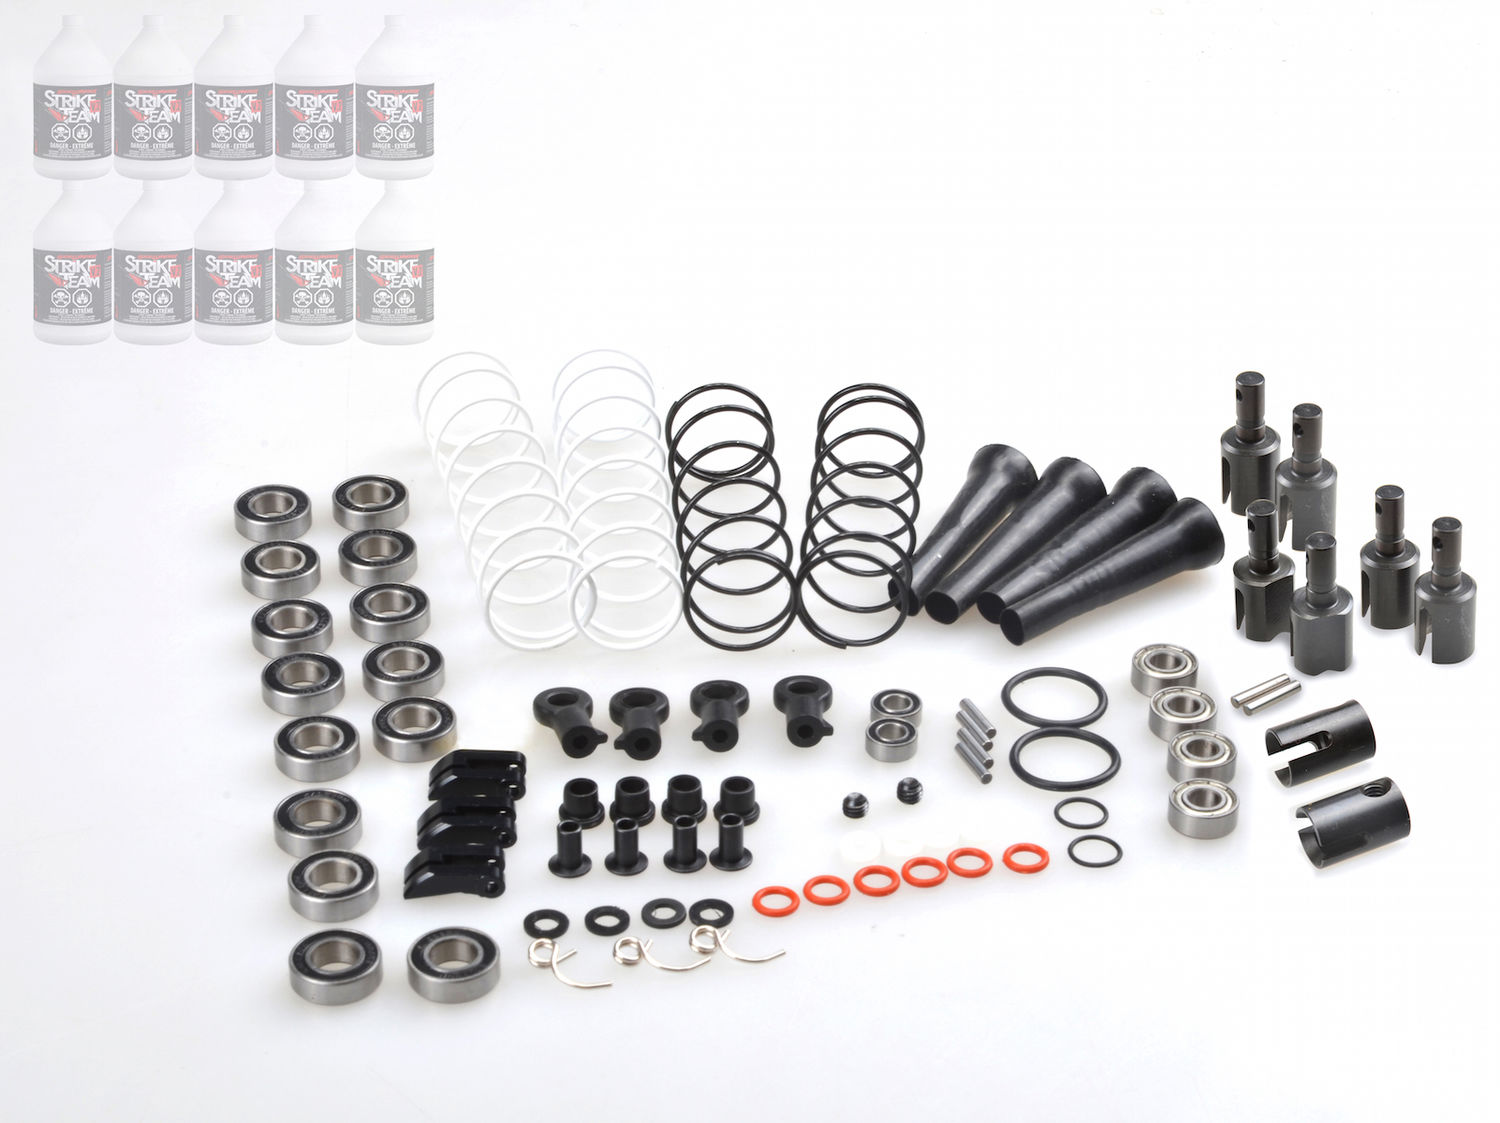 10 Gallon Service Pack By Jqracing